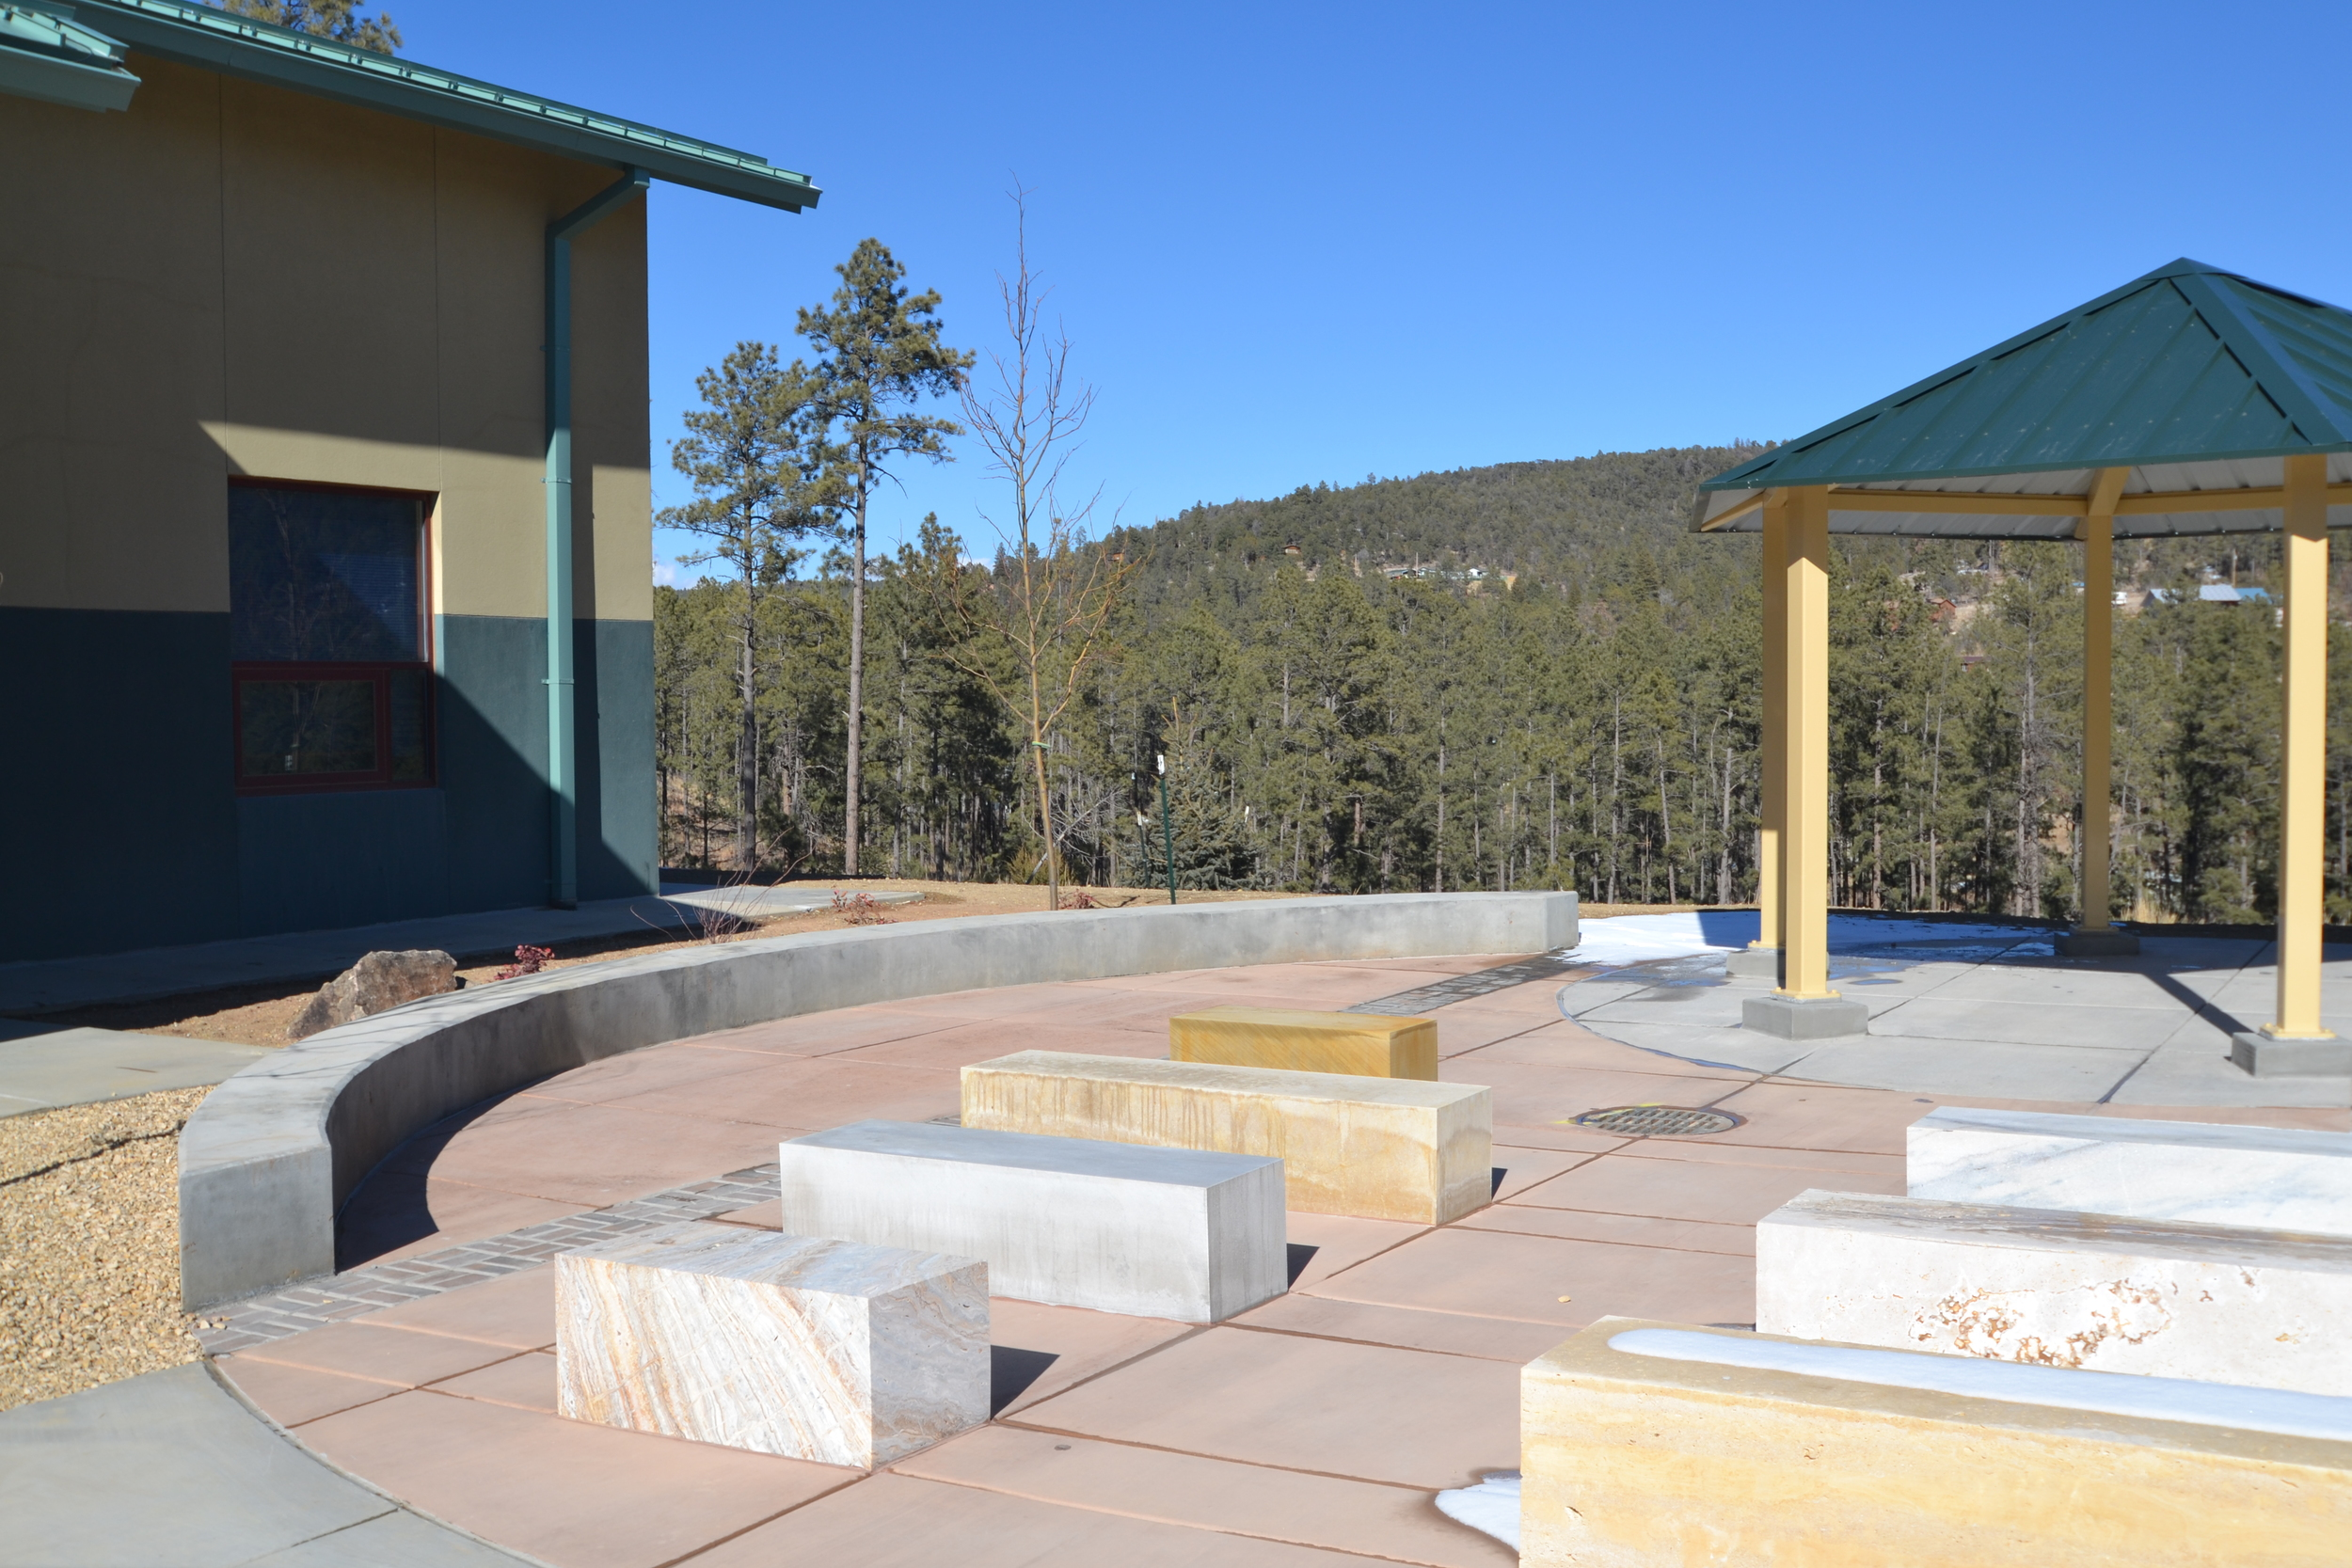 Outdoor seating plaza with pavilion